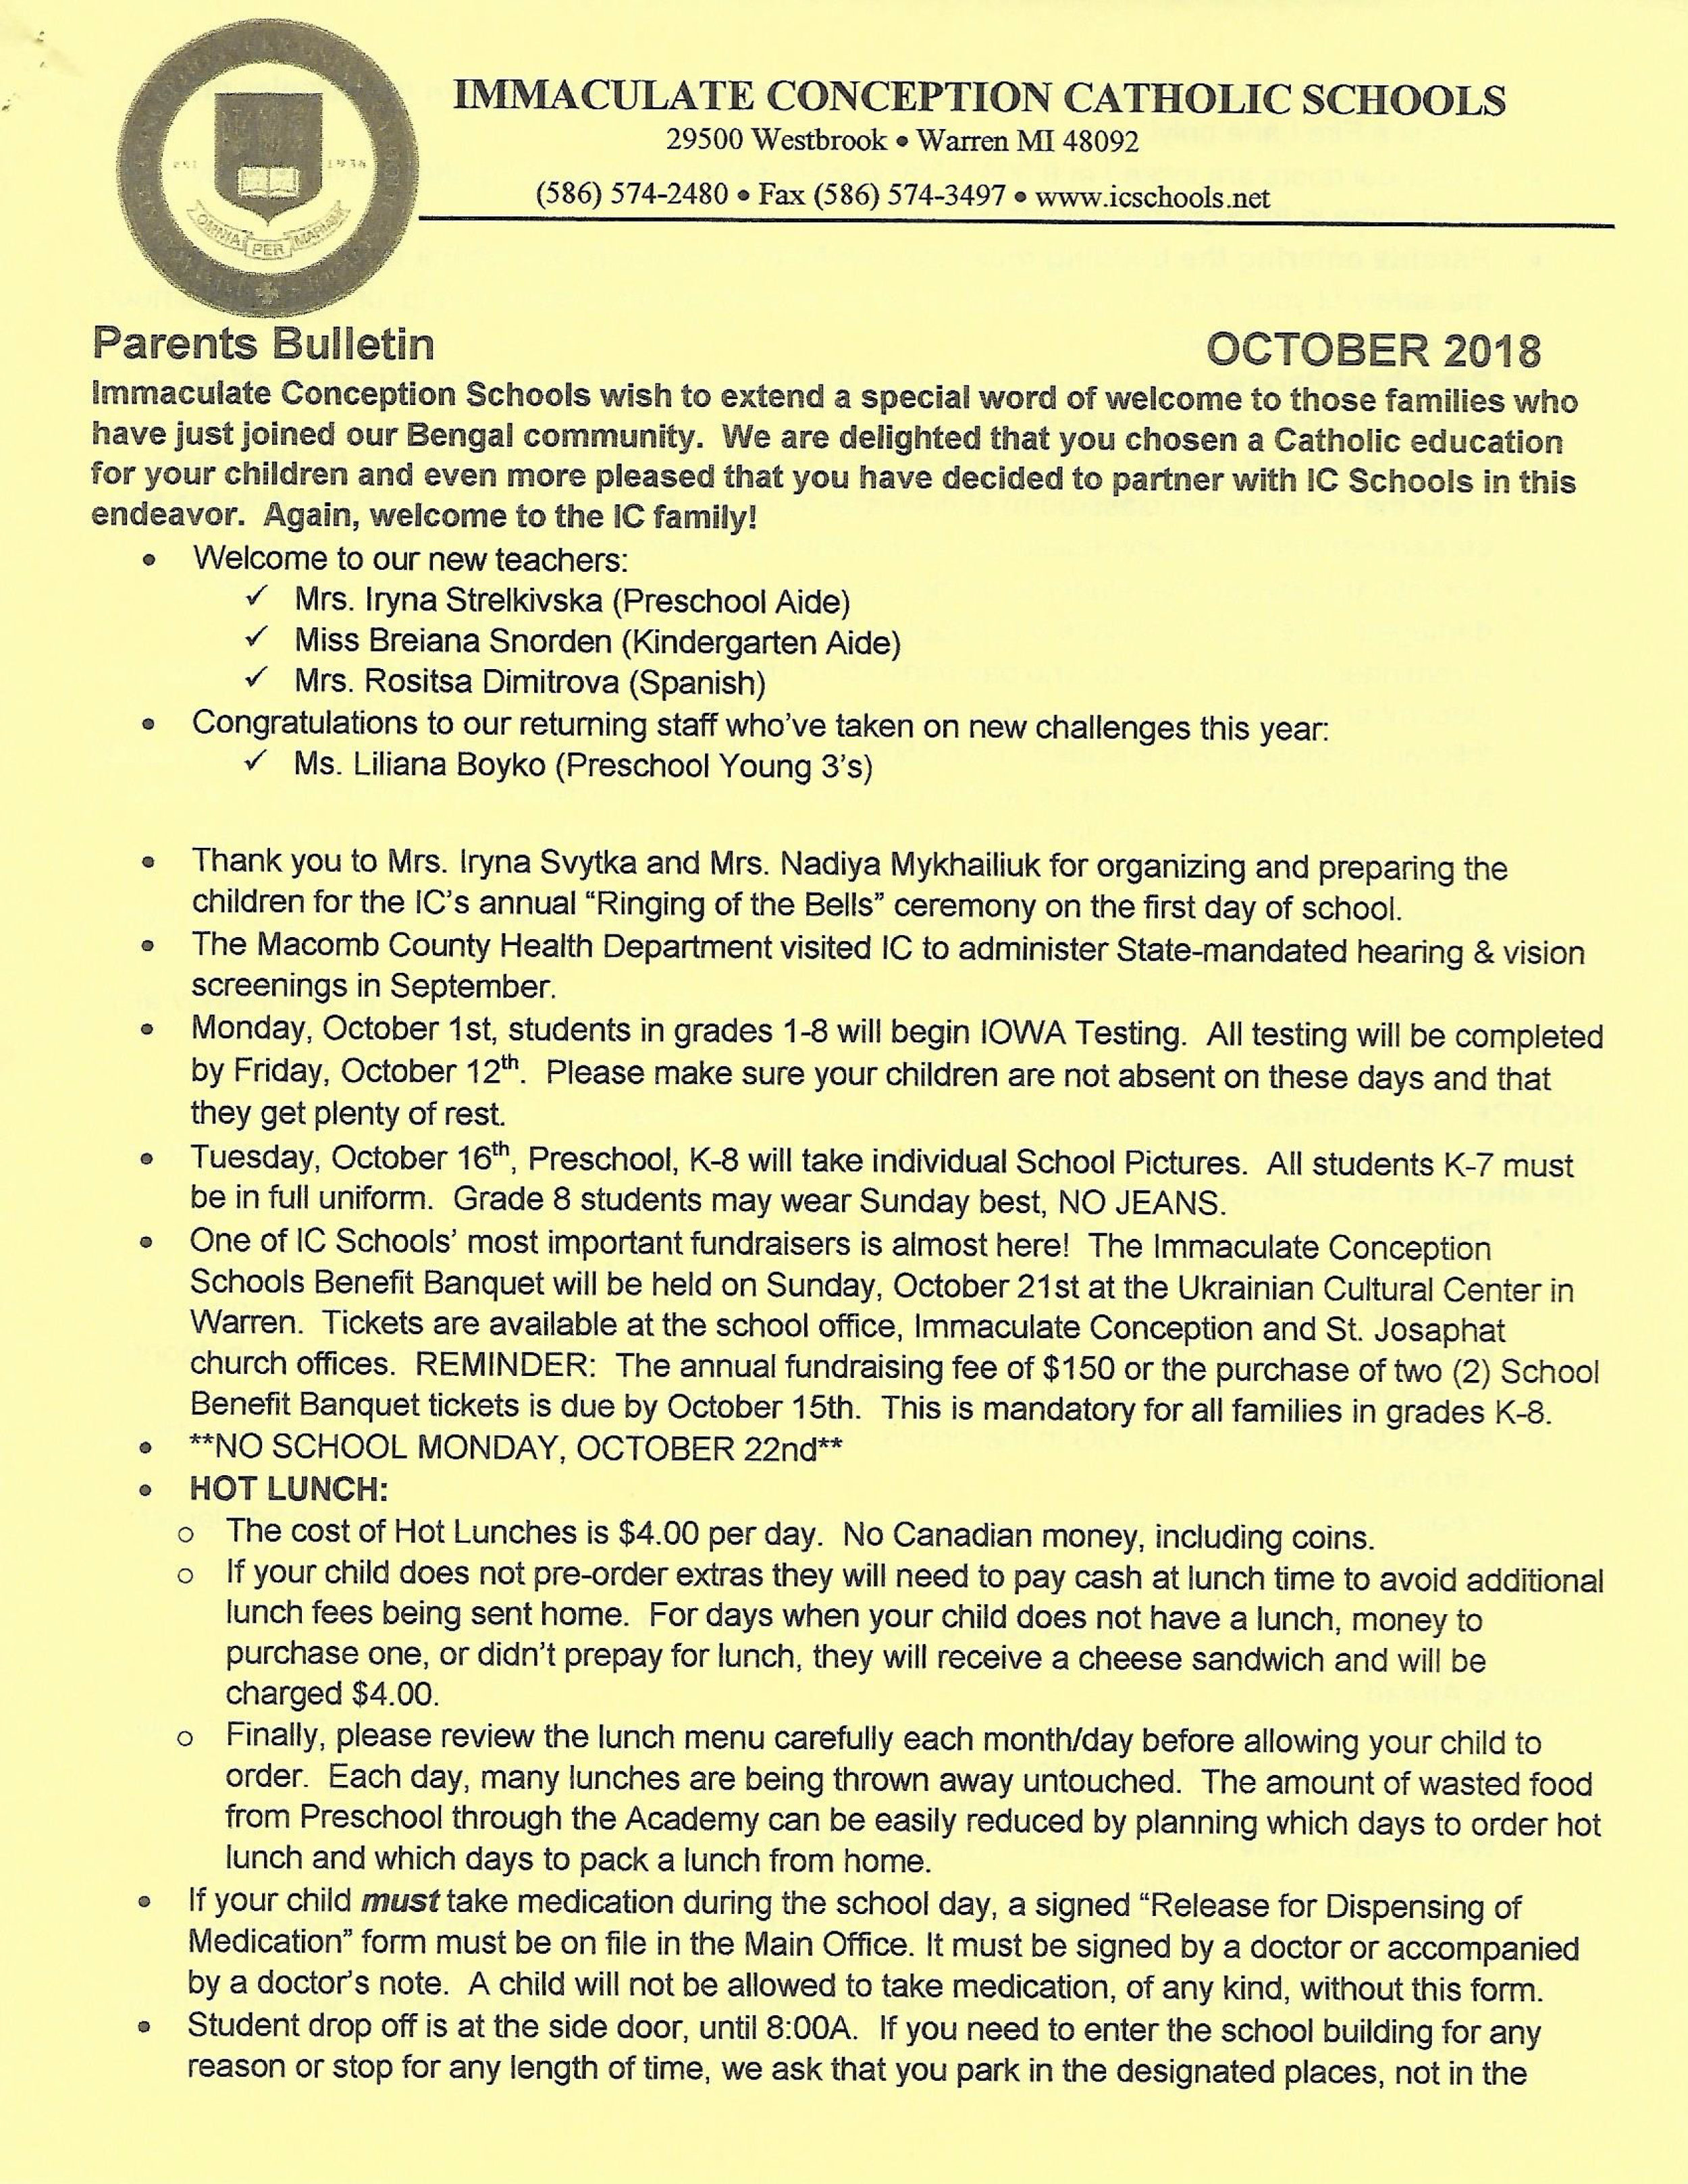 October Parent Bulletin-1.jpg